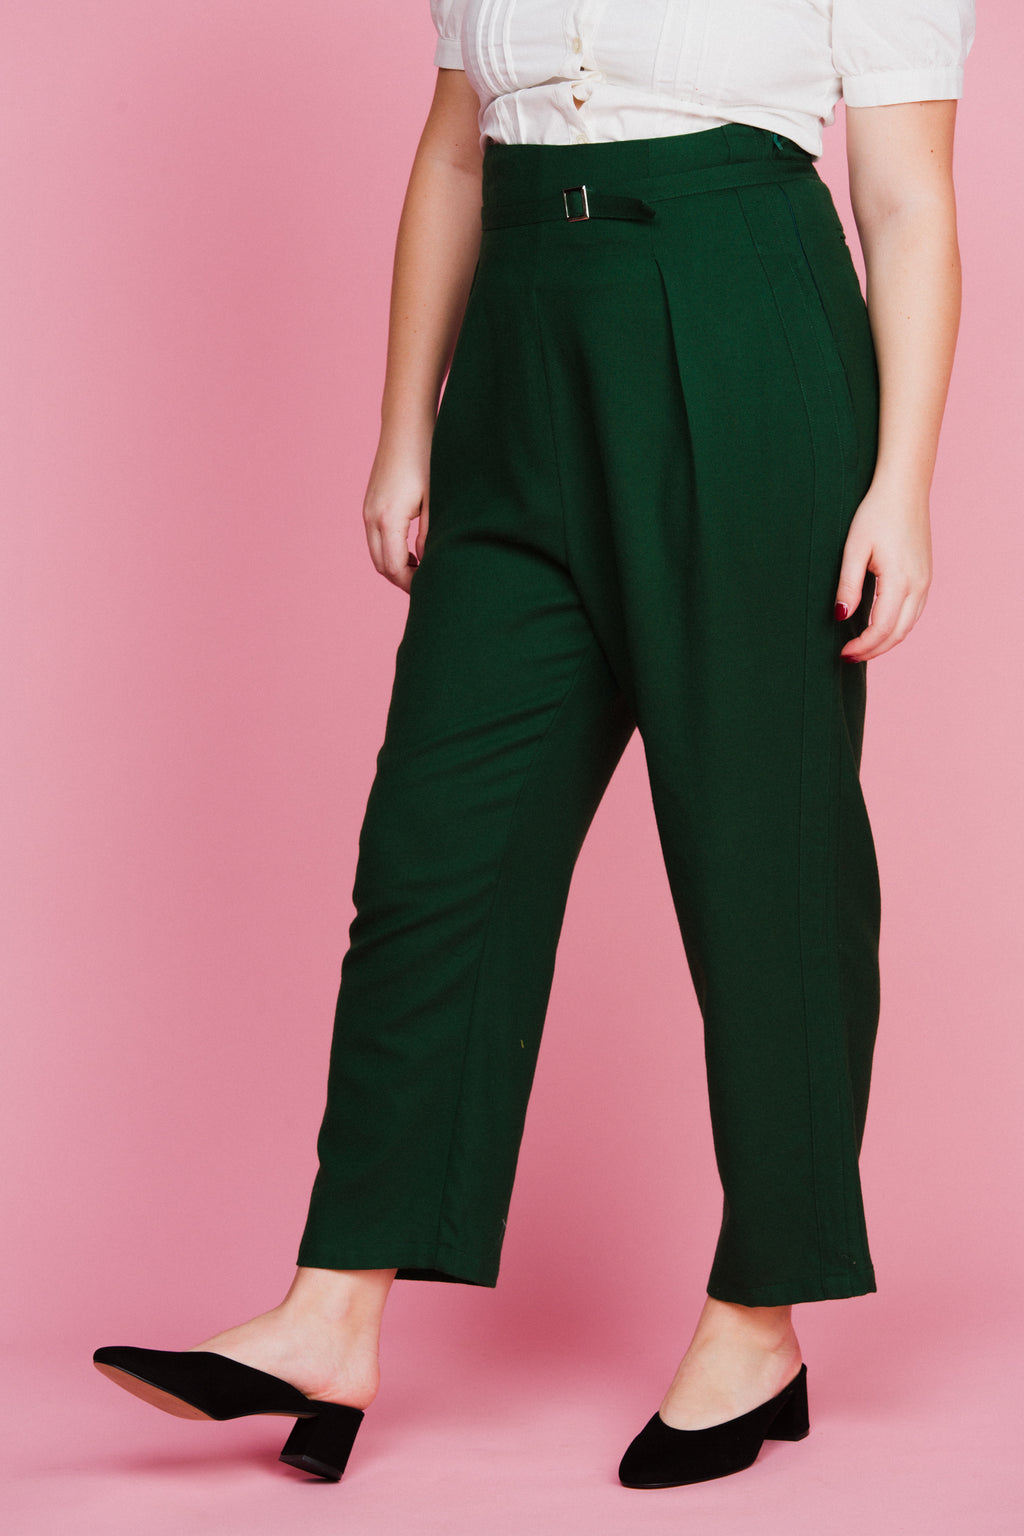 Regent Pants Pants Samantha Pleet - Hello Holiday